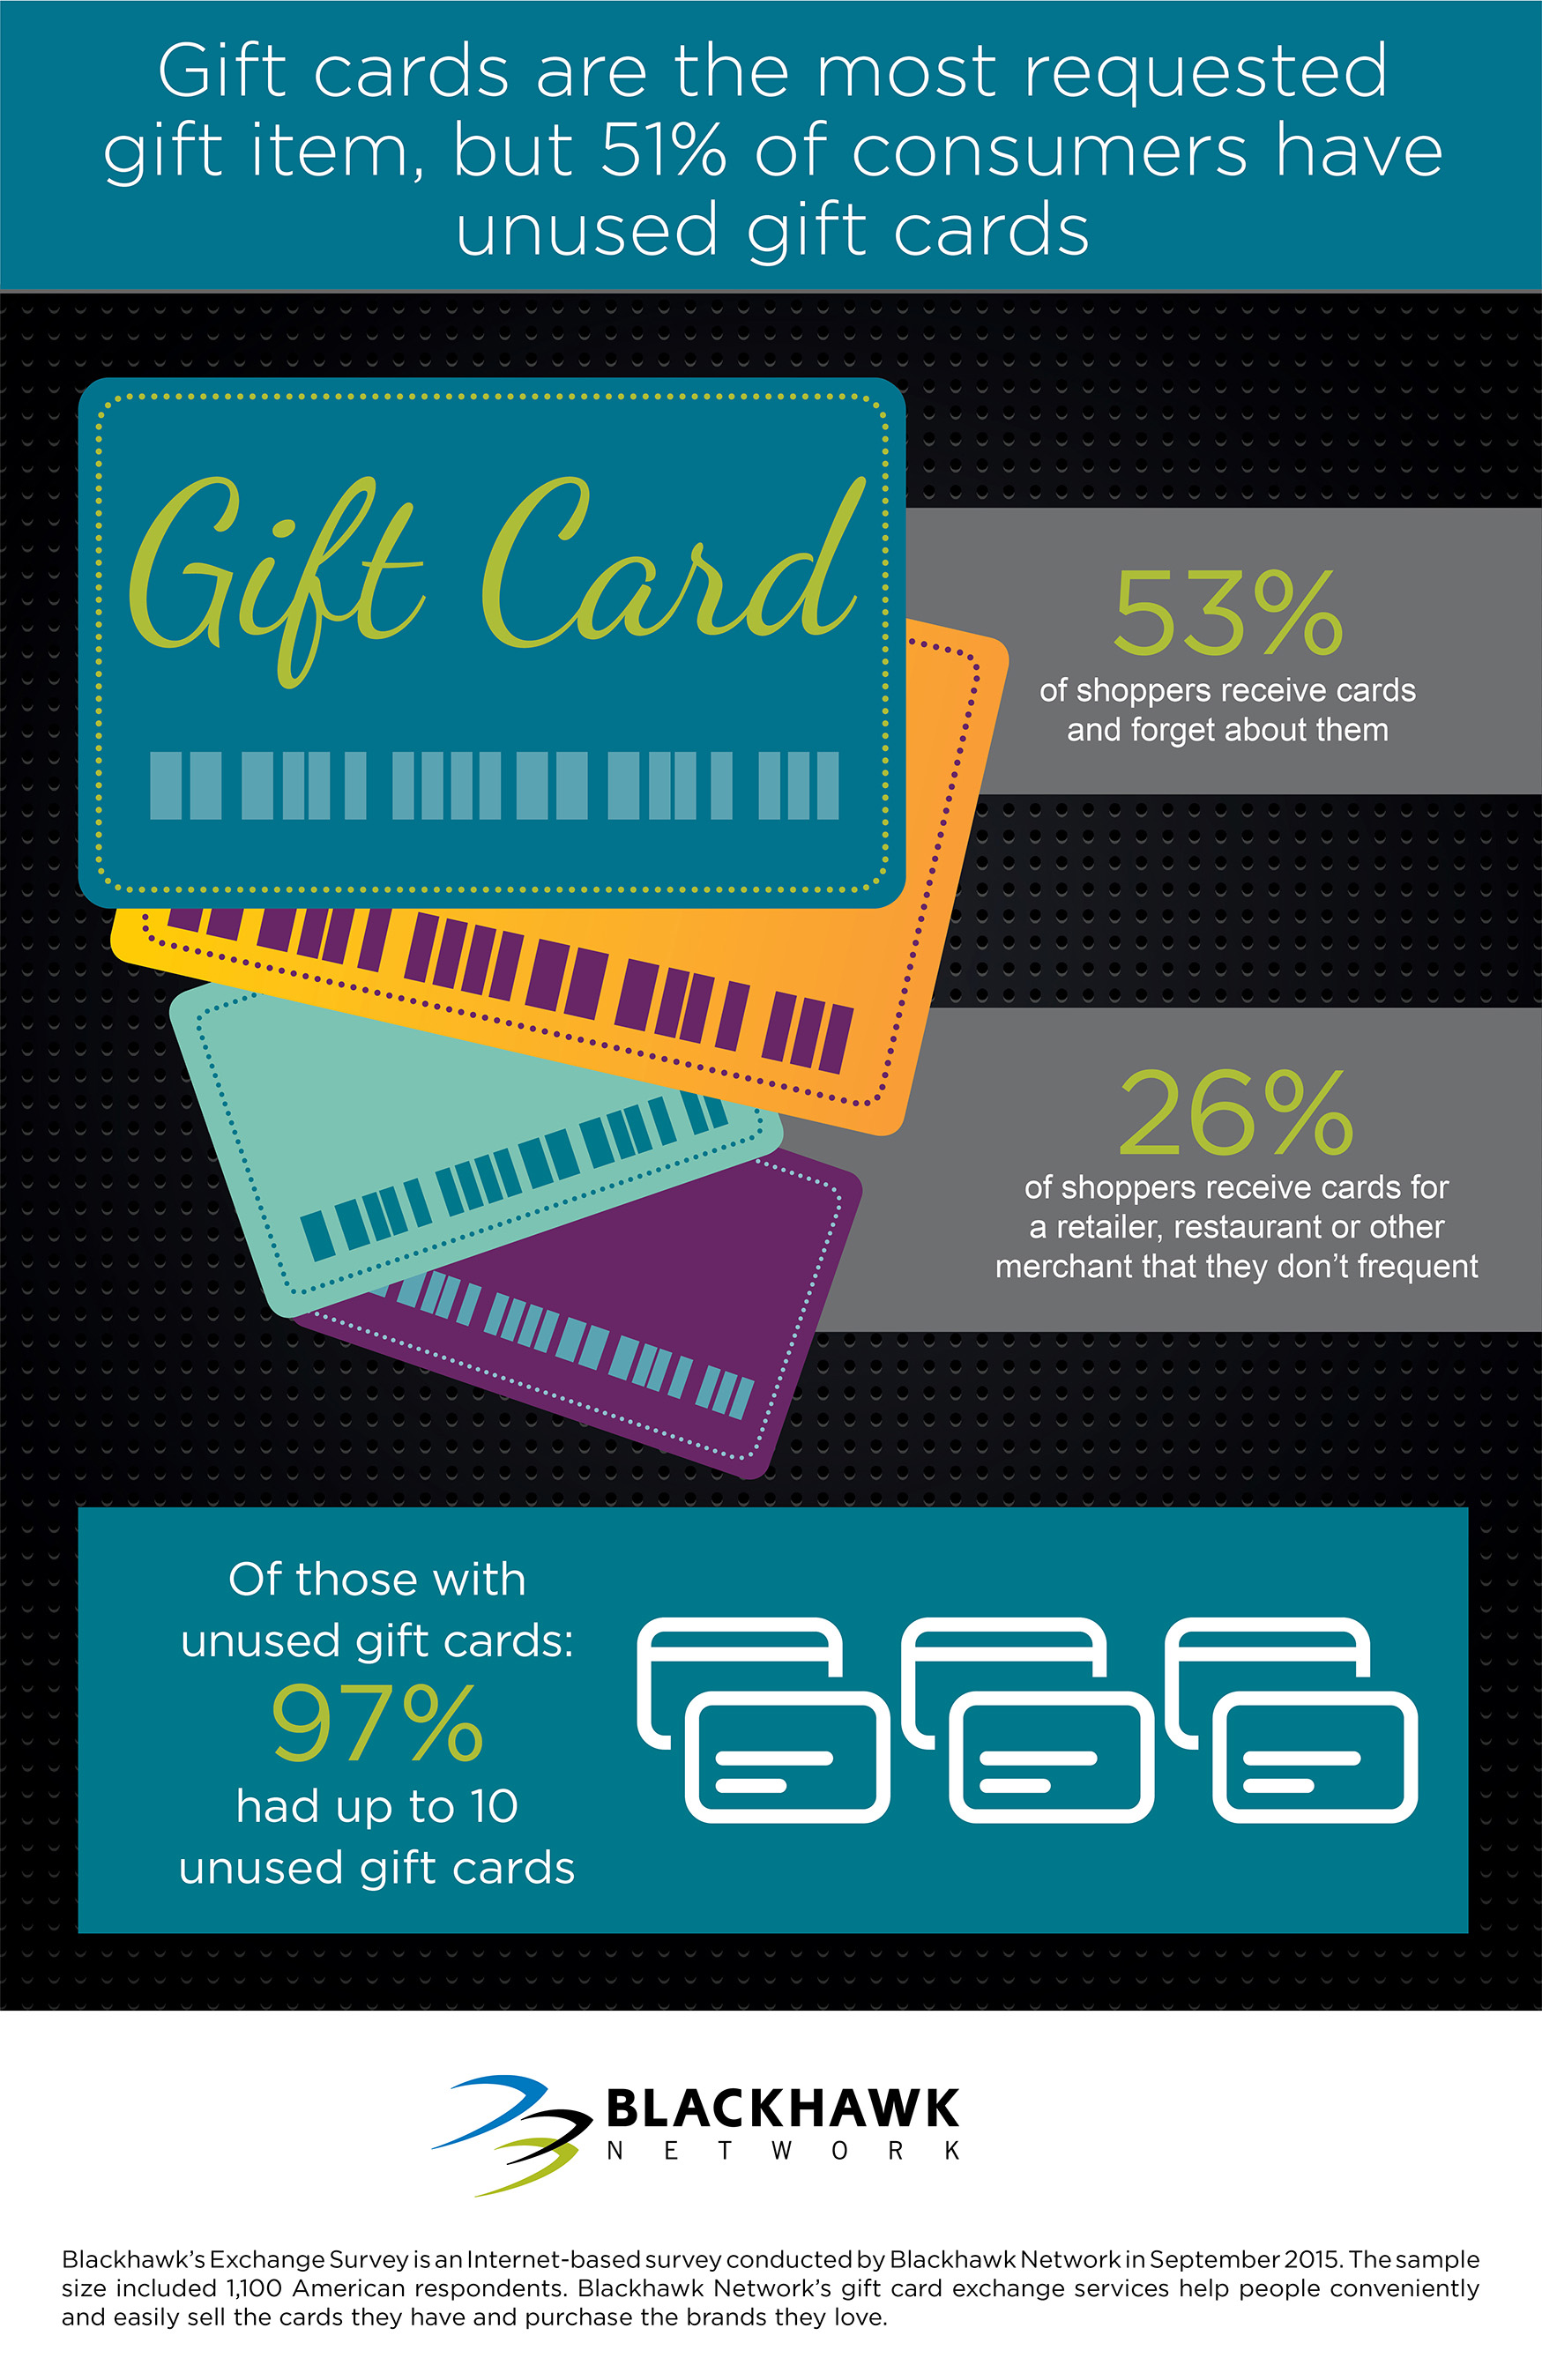 Blackhawk Network Survey Reveals How Consumers Can Get the Most from Gift Cards